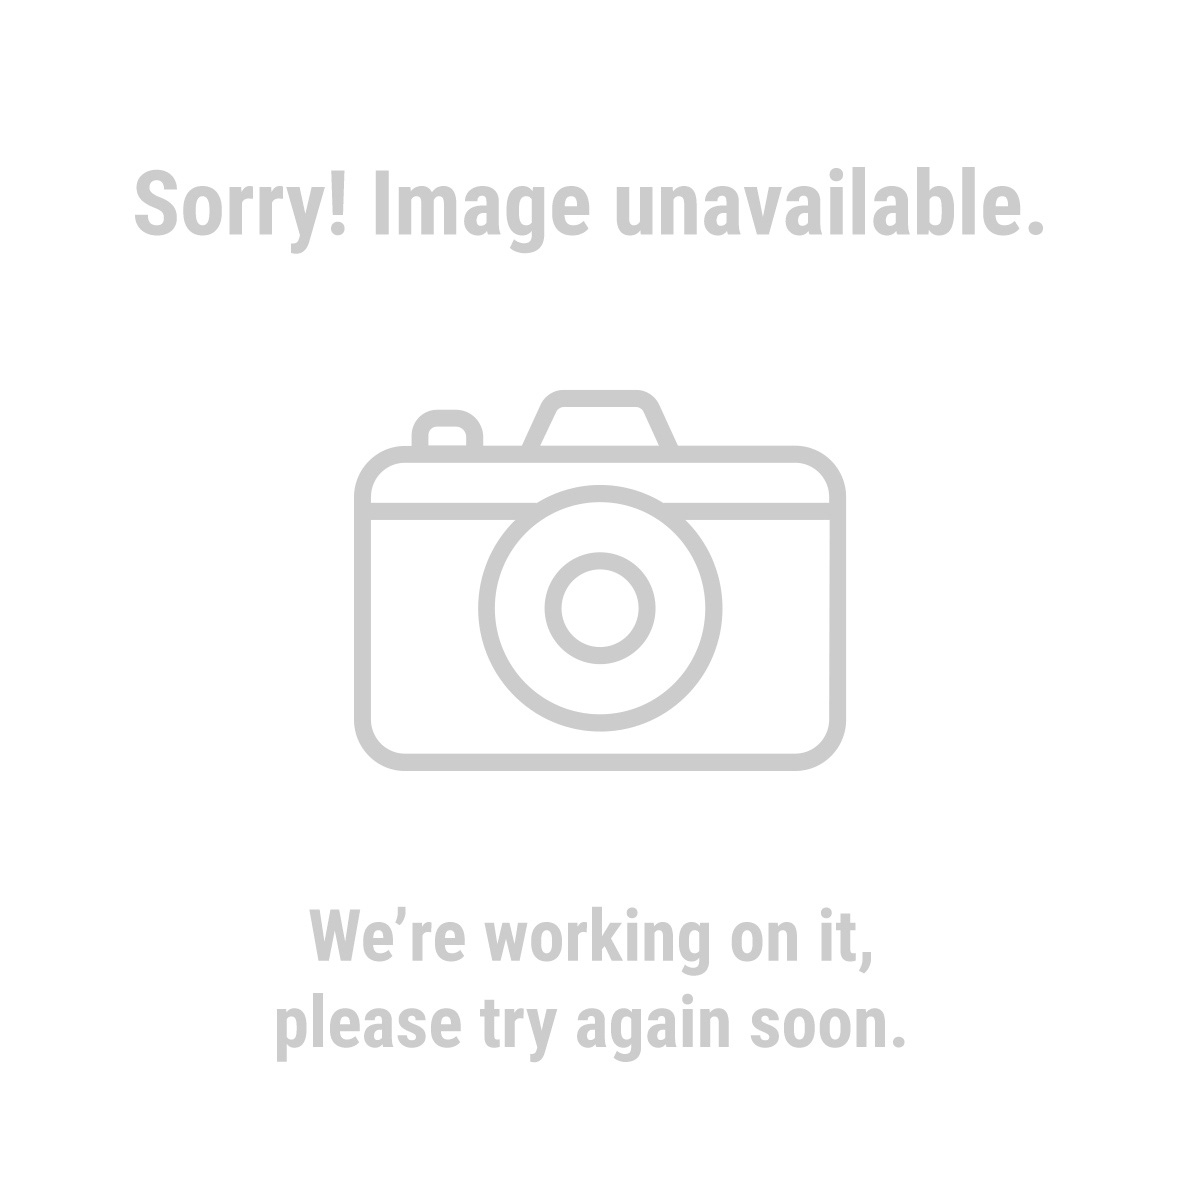 Predator Generators 63078 13500 Peak/11000 Running Watts, 22 HP (670cc) Gas Generator